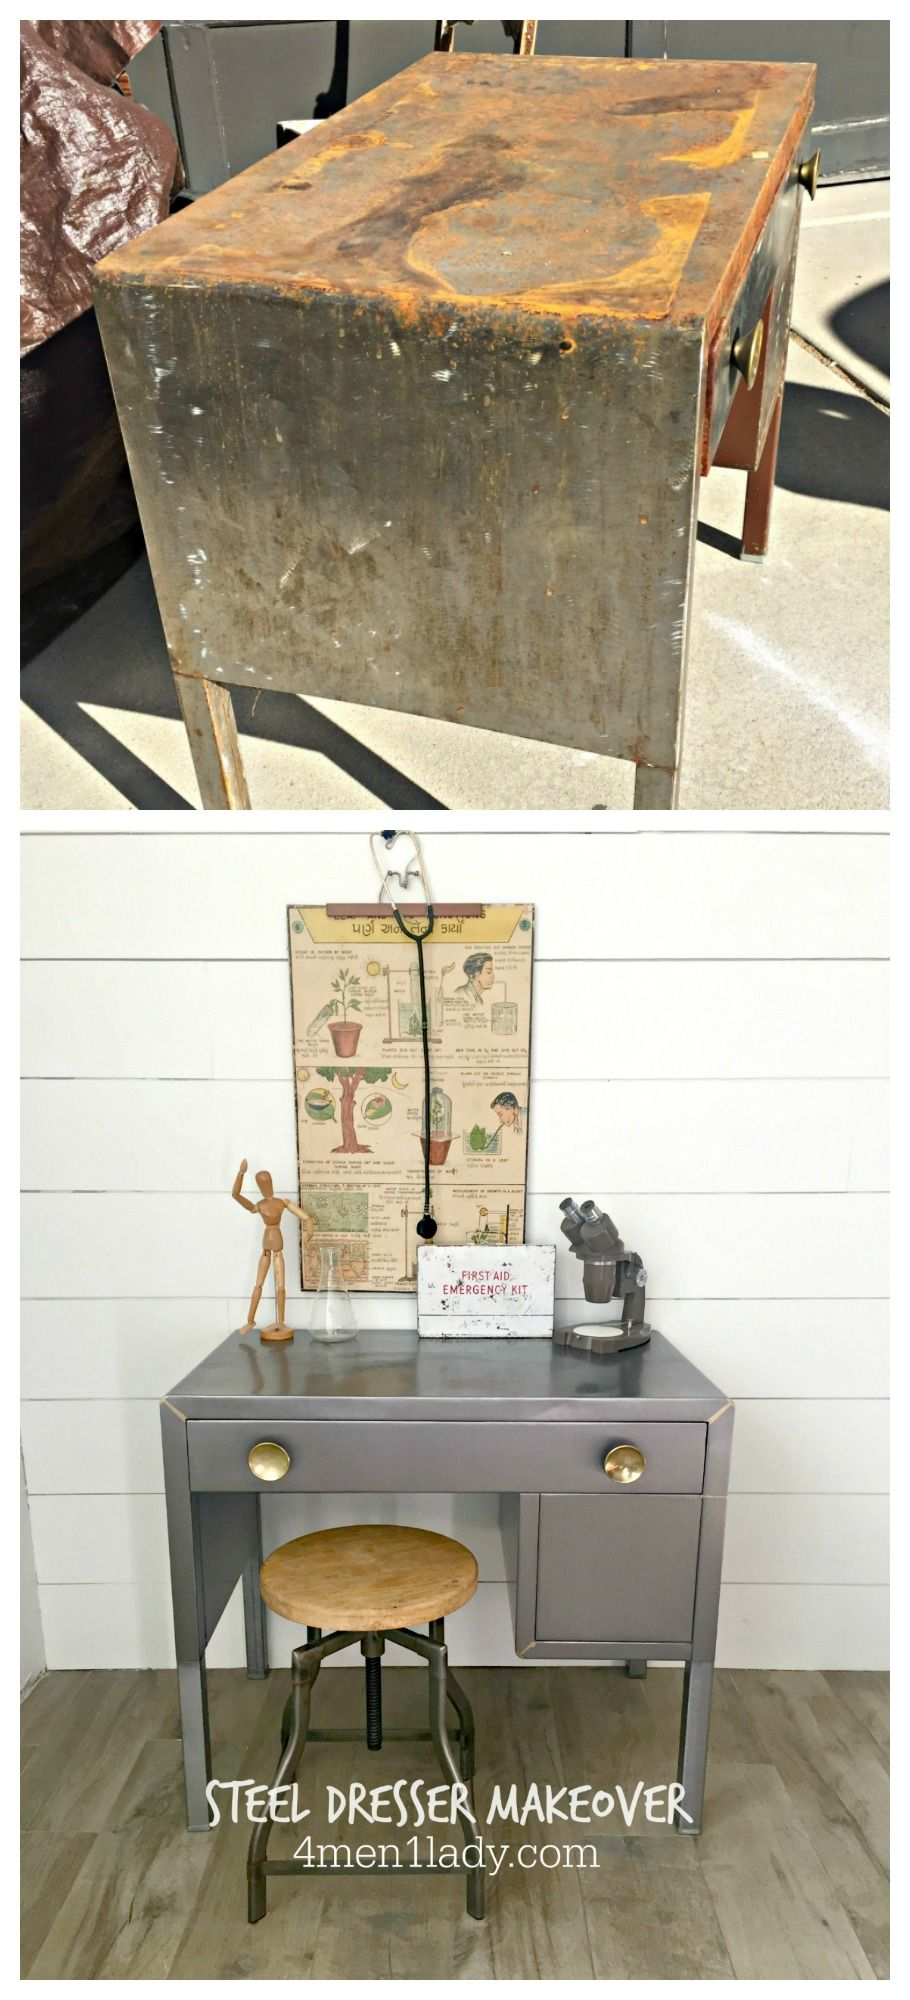 vintage industrial simmons metal side table. How To Take The Rust Off An Old Metal Dresser And Make It Shine Again. 4men1lady.com Vintage Industrial Simmons Side Table